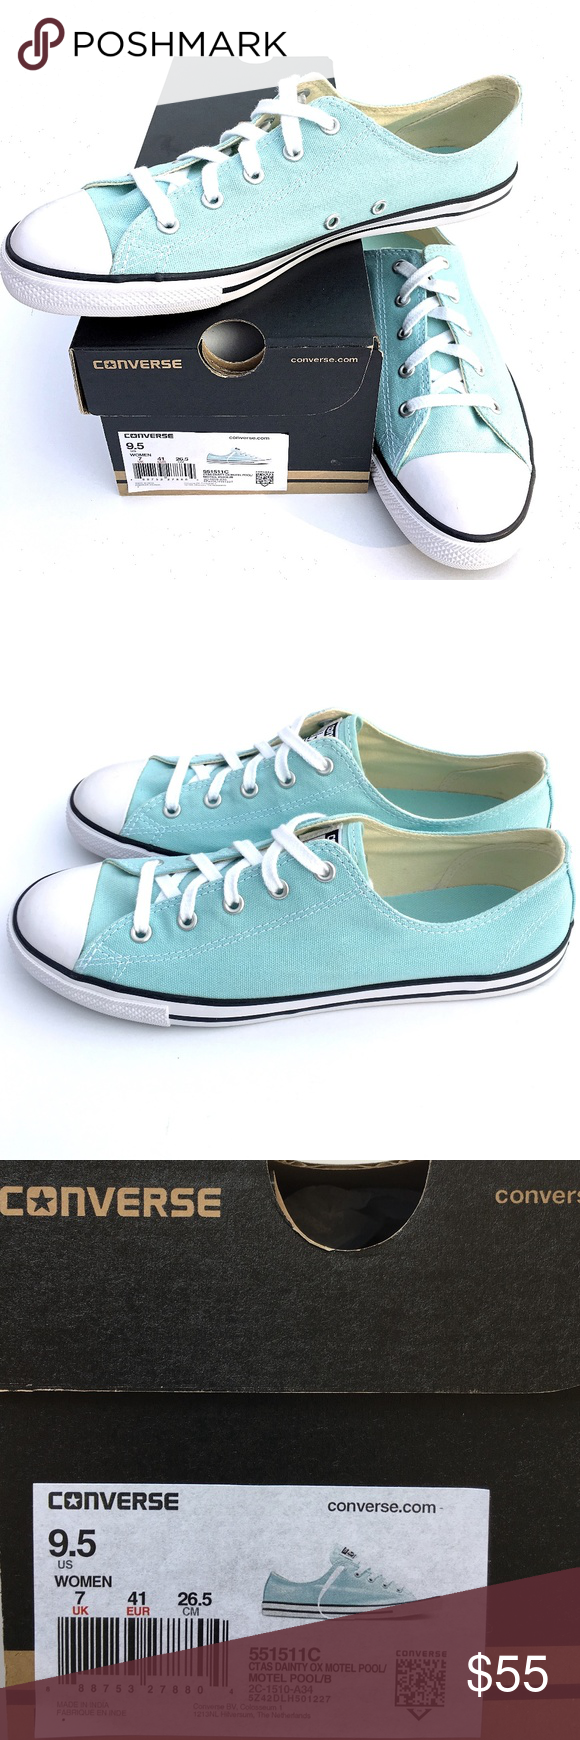 e8bf1938d1f Sneakers Fashion · Converse Chuck Taylor All Star · NWB Converse Dainty  MOTEL POOL Chuck Taylor AS NWB - NEW WITH BOX women s Converse Chuck